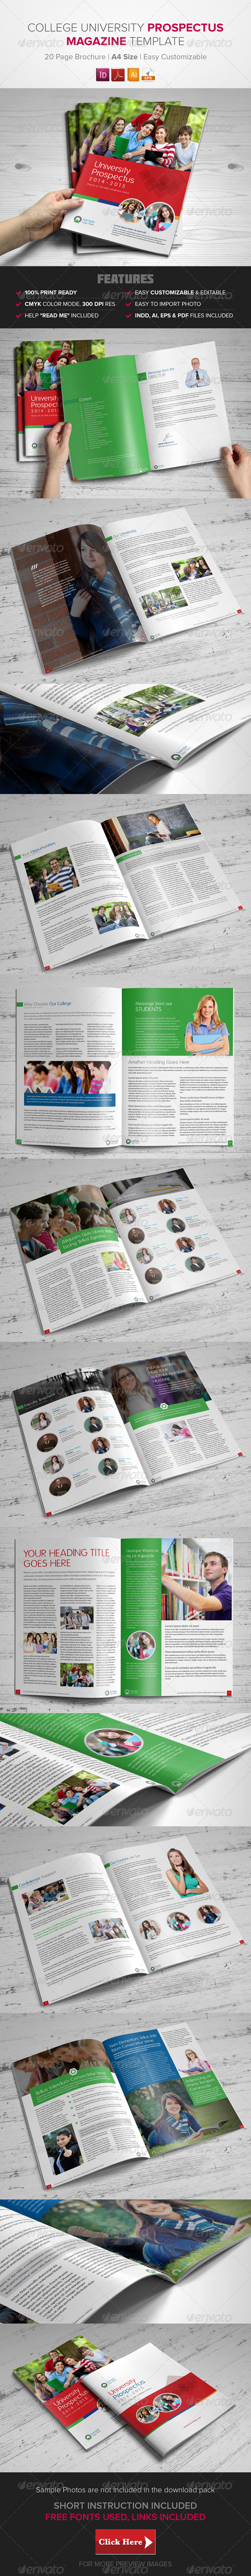 College University Prospectus Magazine Template